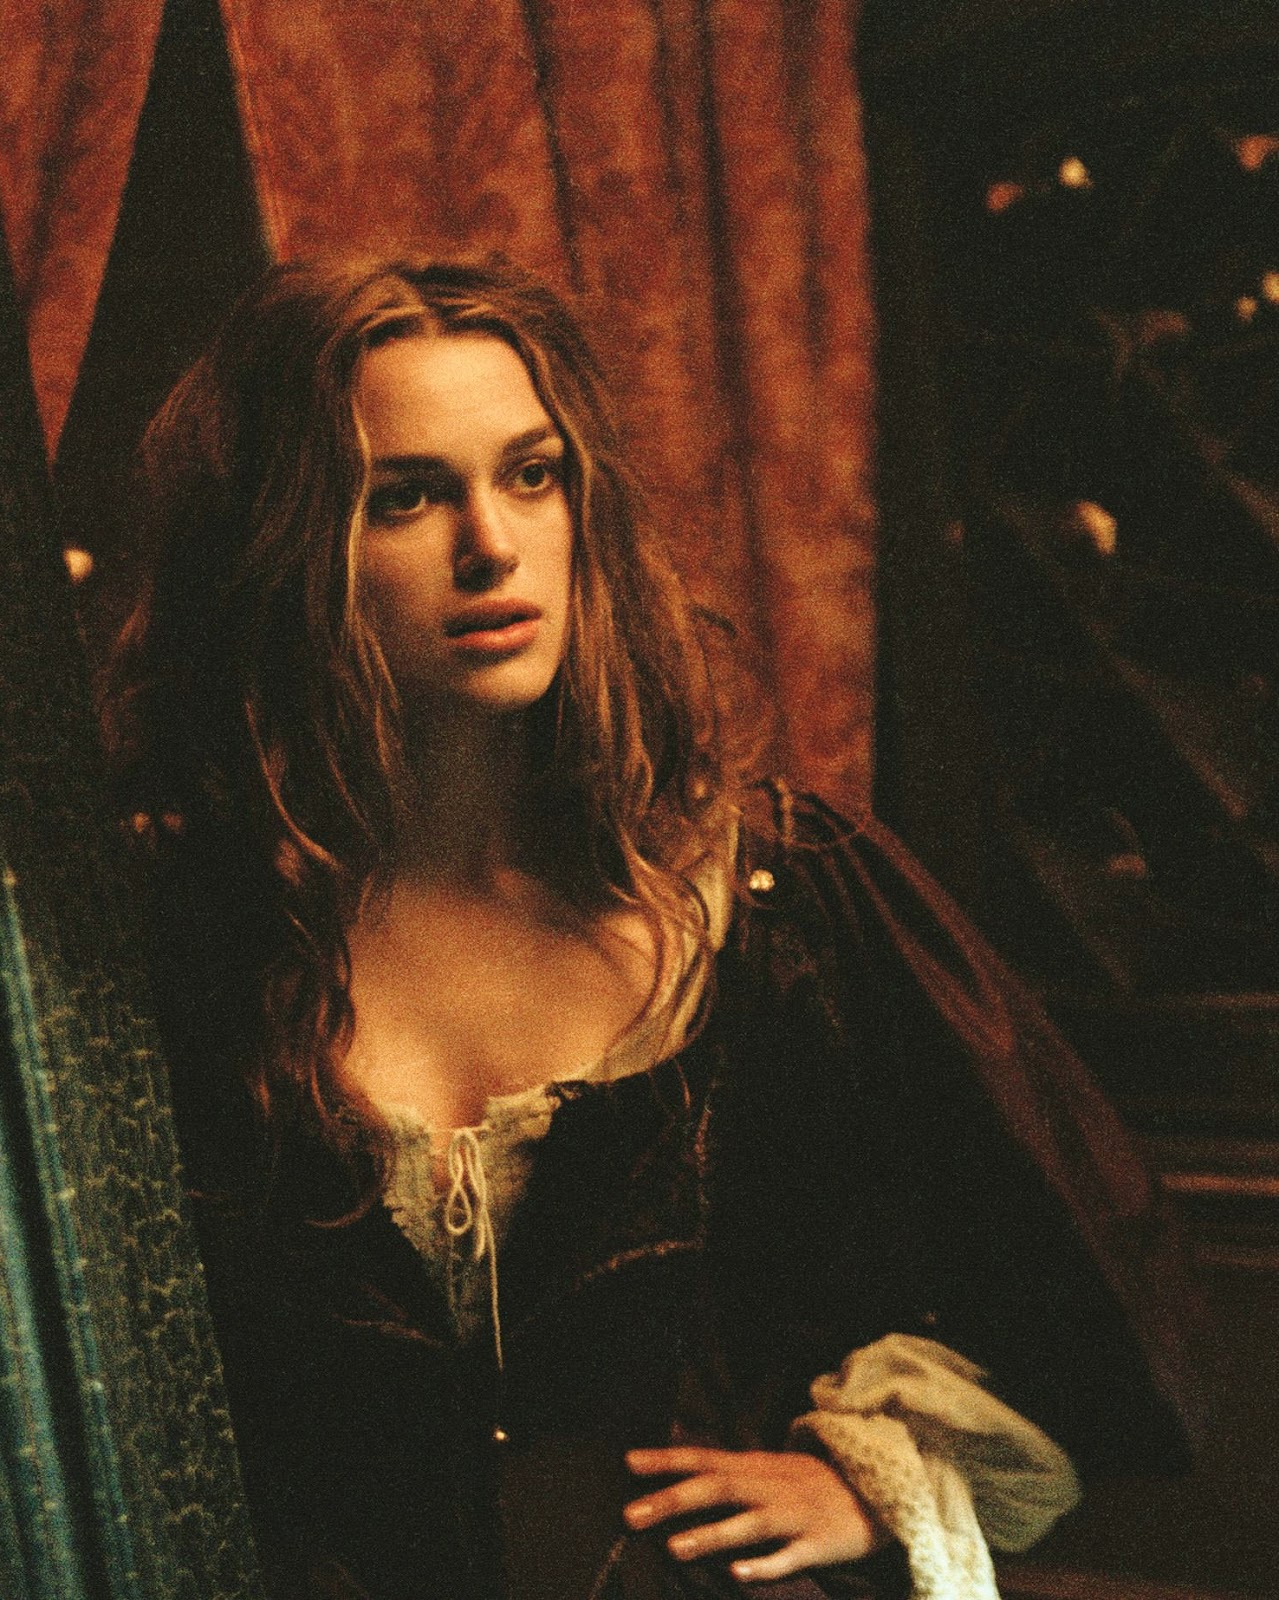 elizabeth swann has sex